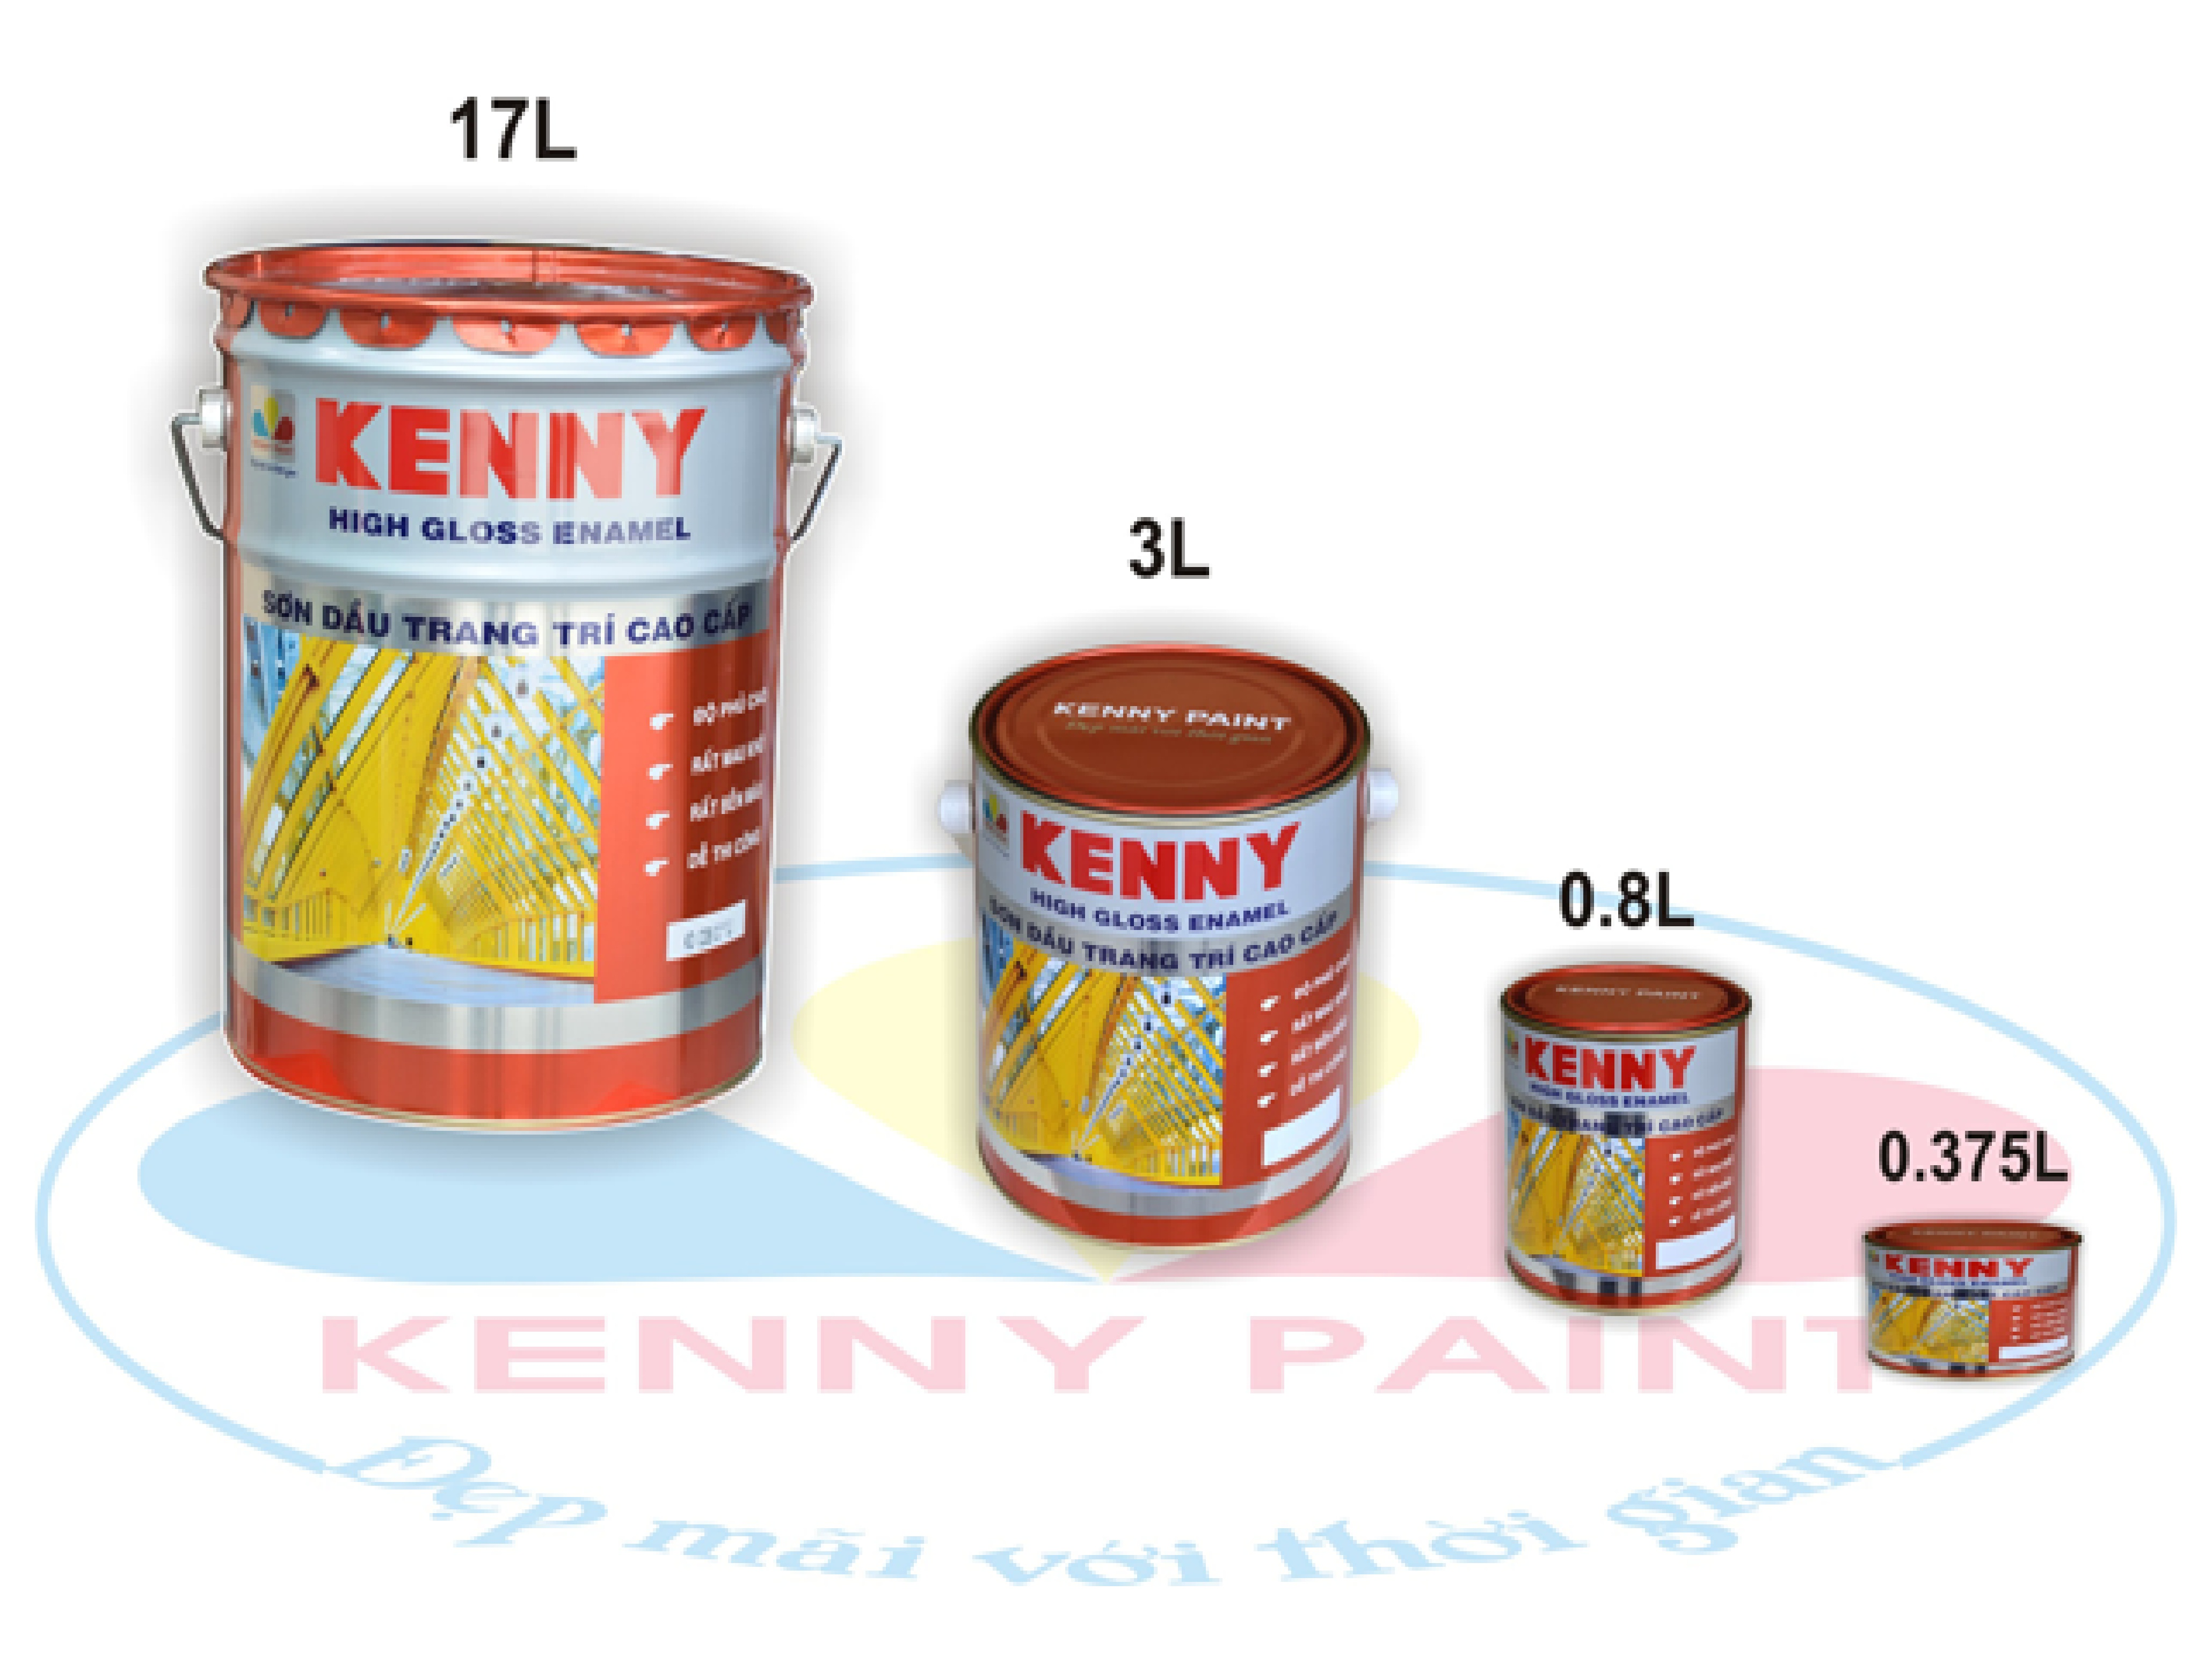 Sơn dầu KENNY High Gloss Enamel